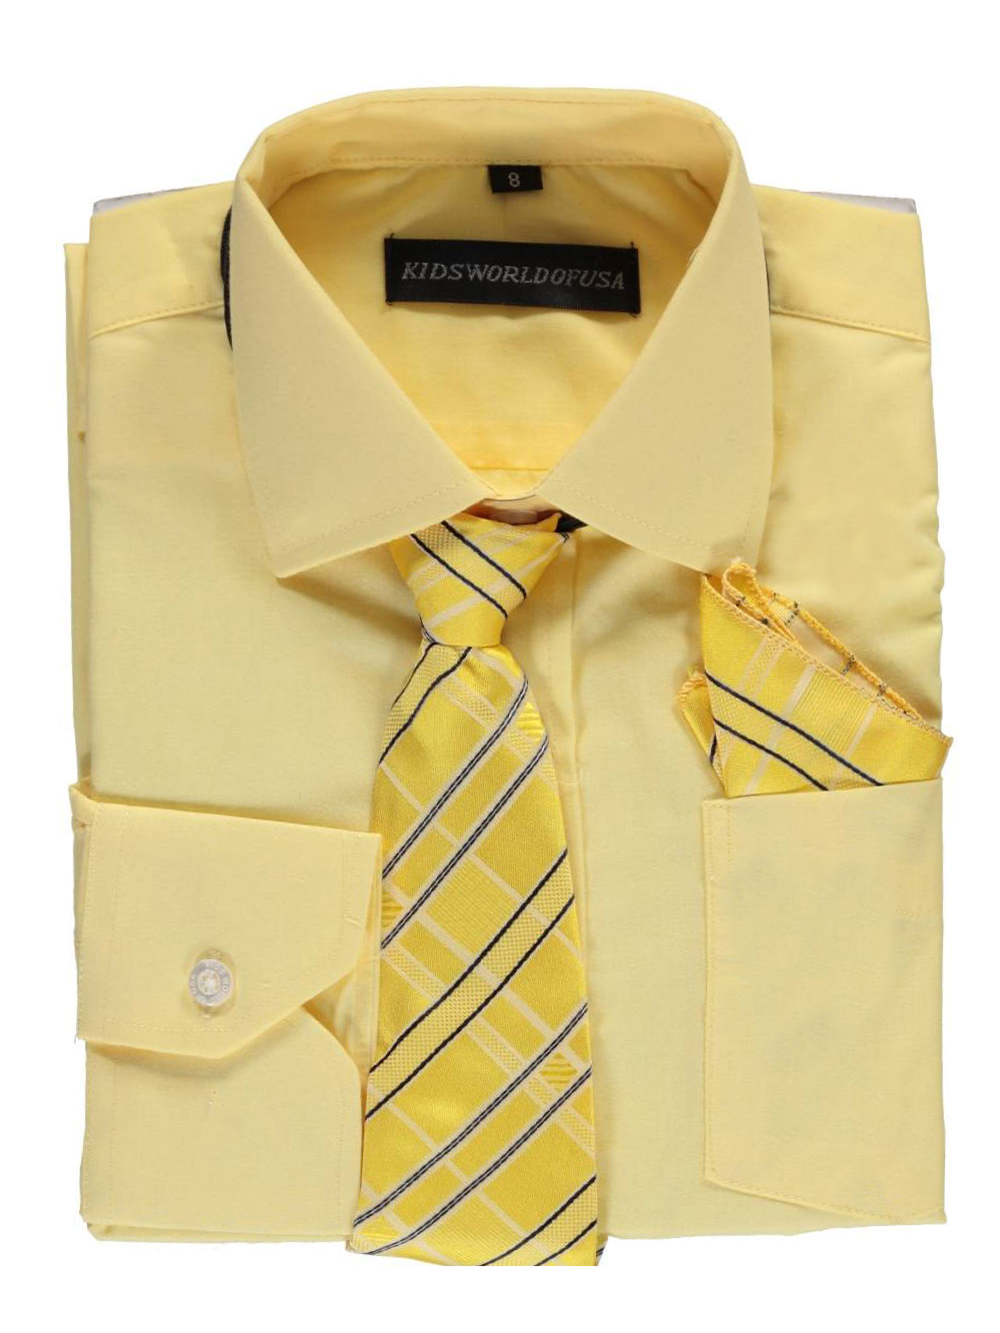 Kids World Big Boys' Dress Shirt with Accessories (Sizes 8 - 20) - yellow, 12